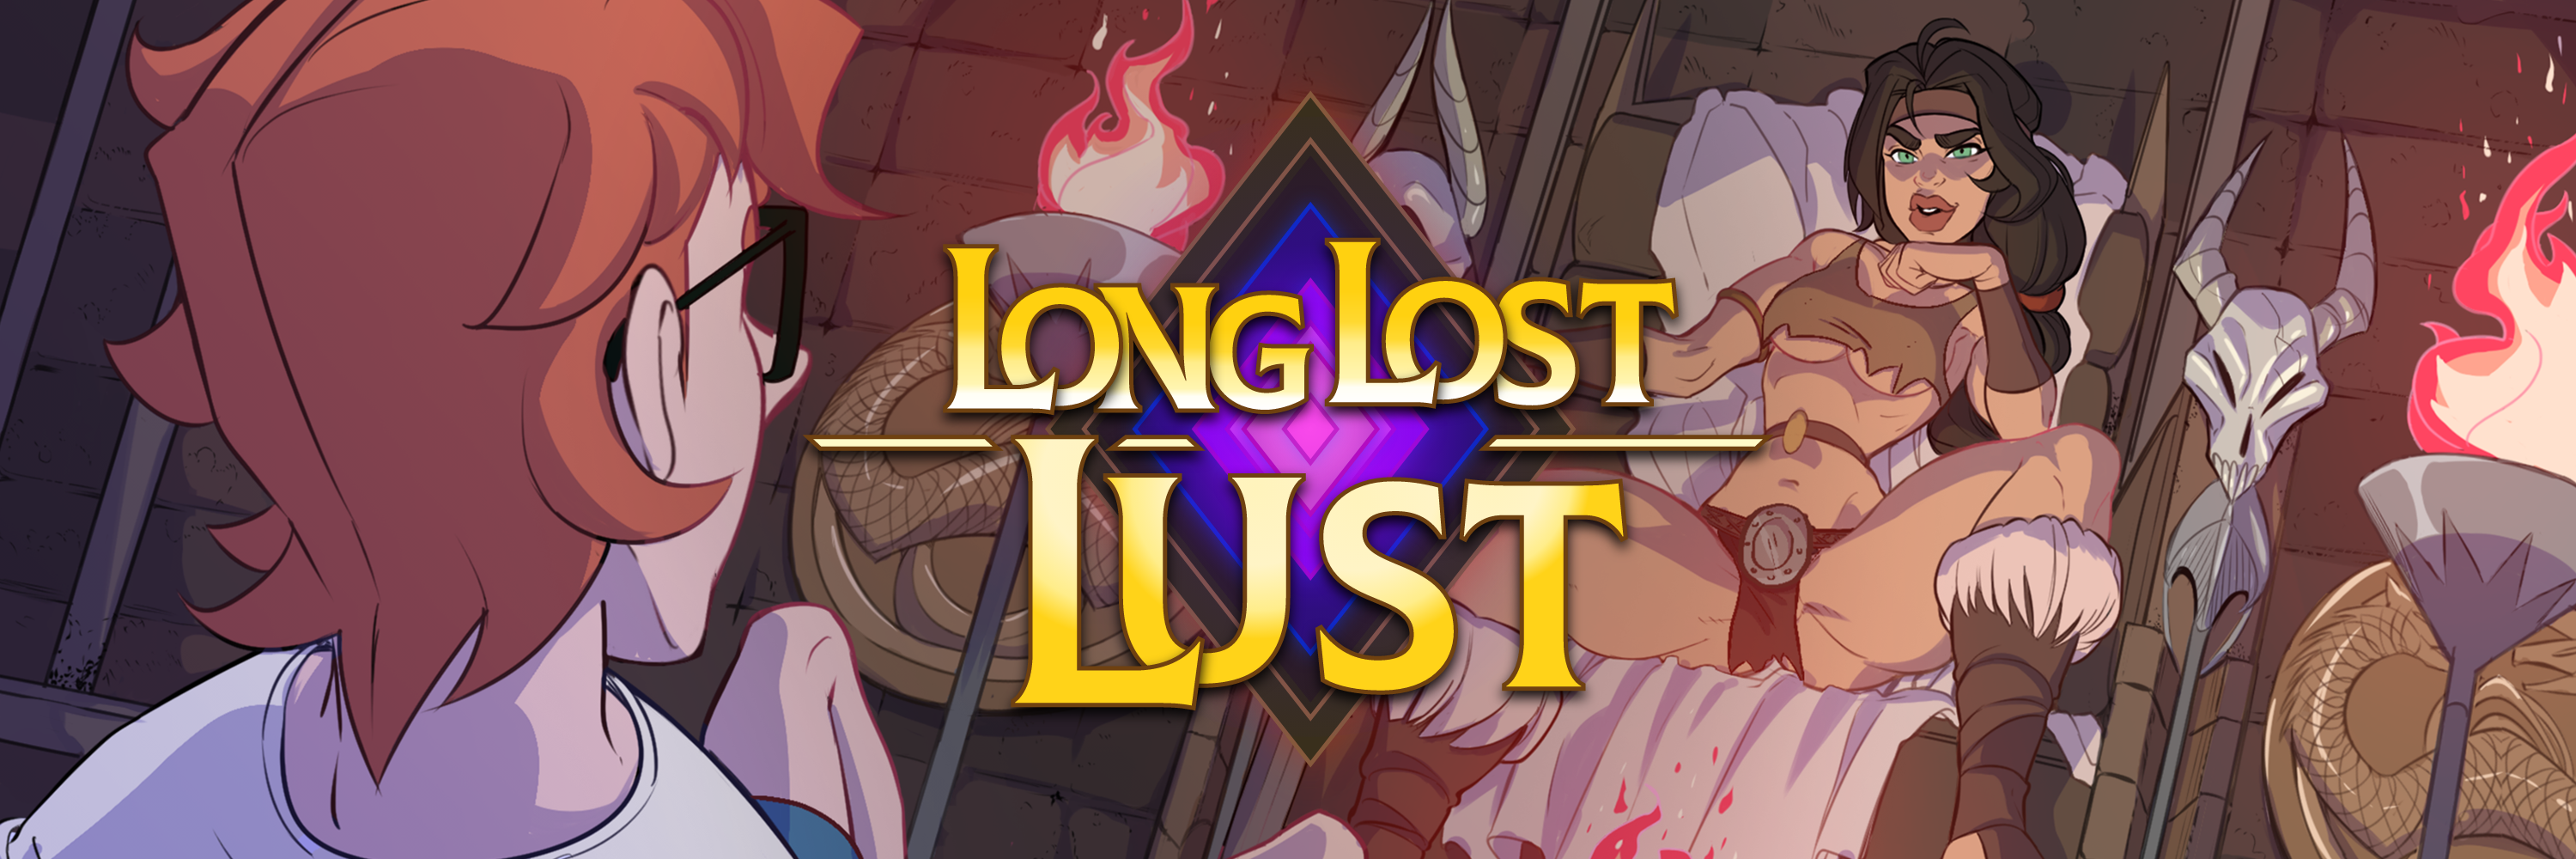 long lost lust twitter header